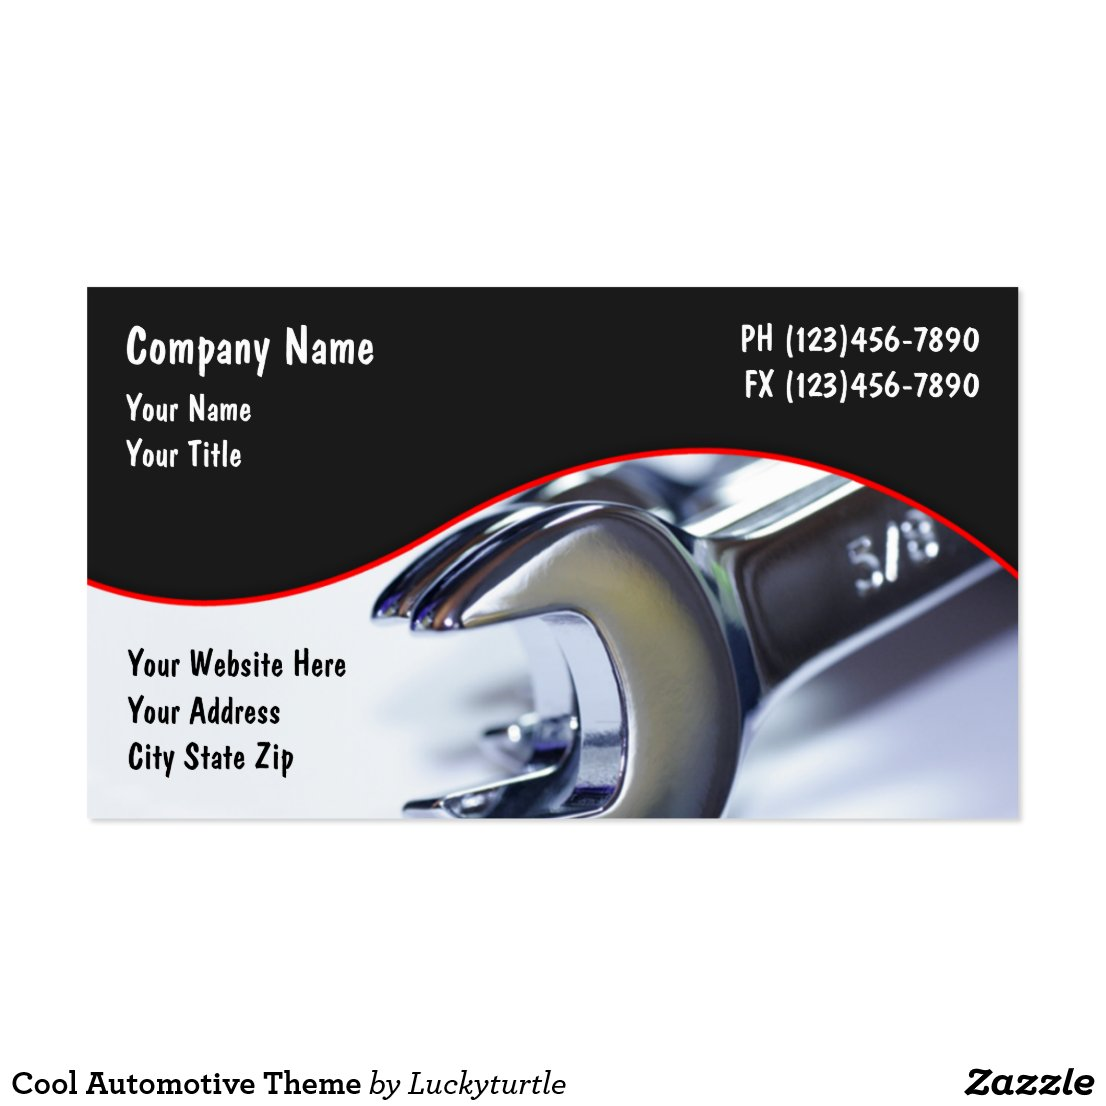 Double sided business cards template word business card sample another wallpapers of double sided business cards template word funnies pictures about mechanic business cards templates free wajeb Images